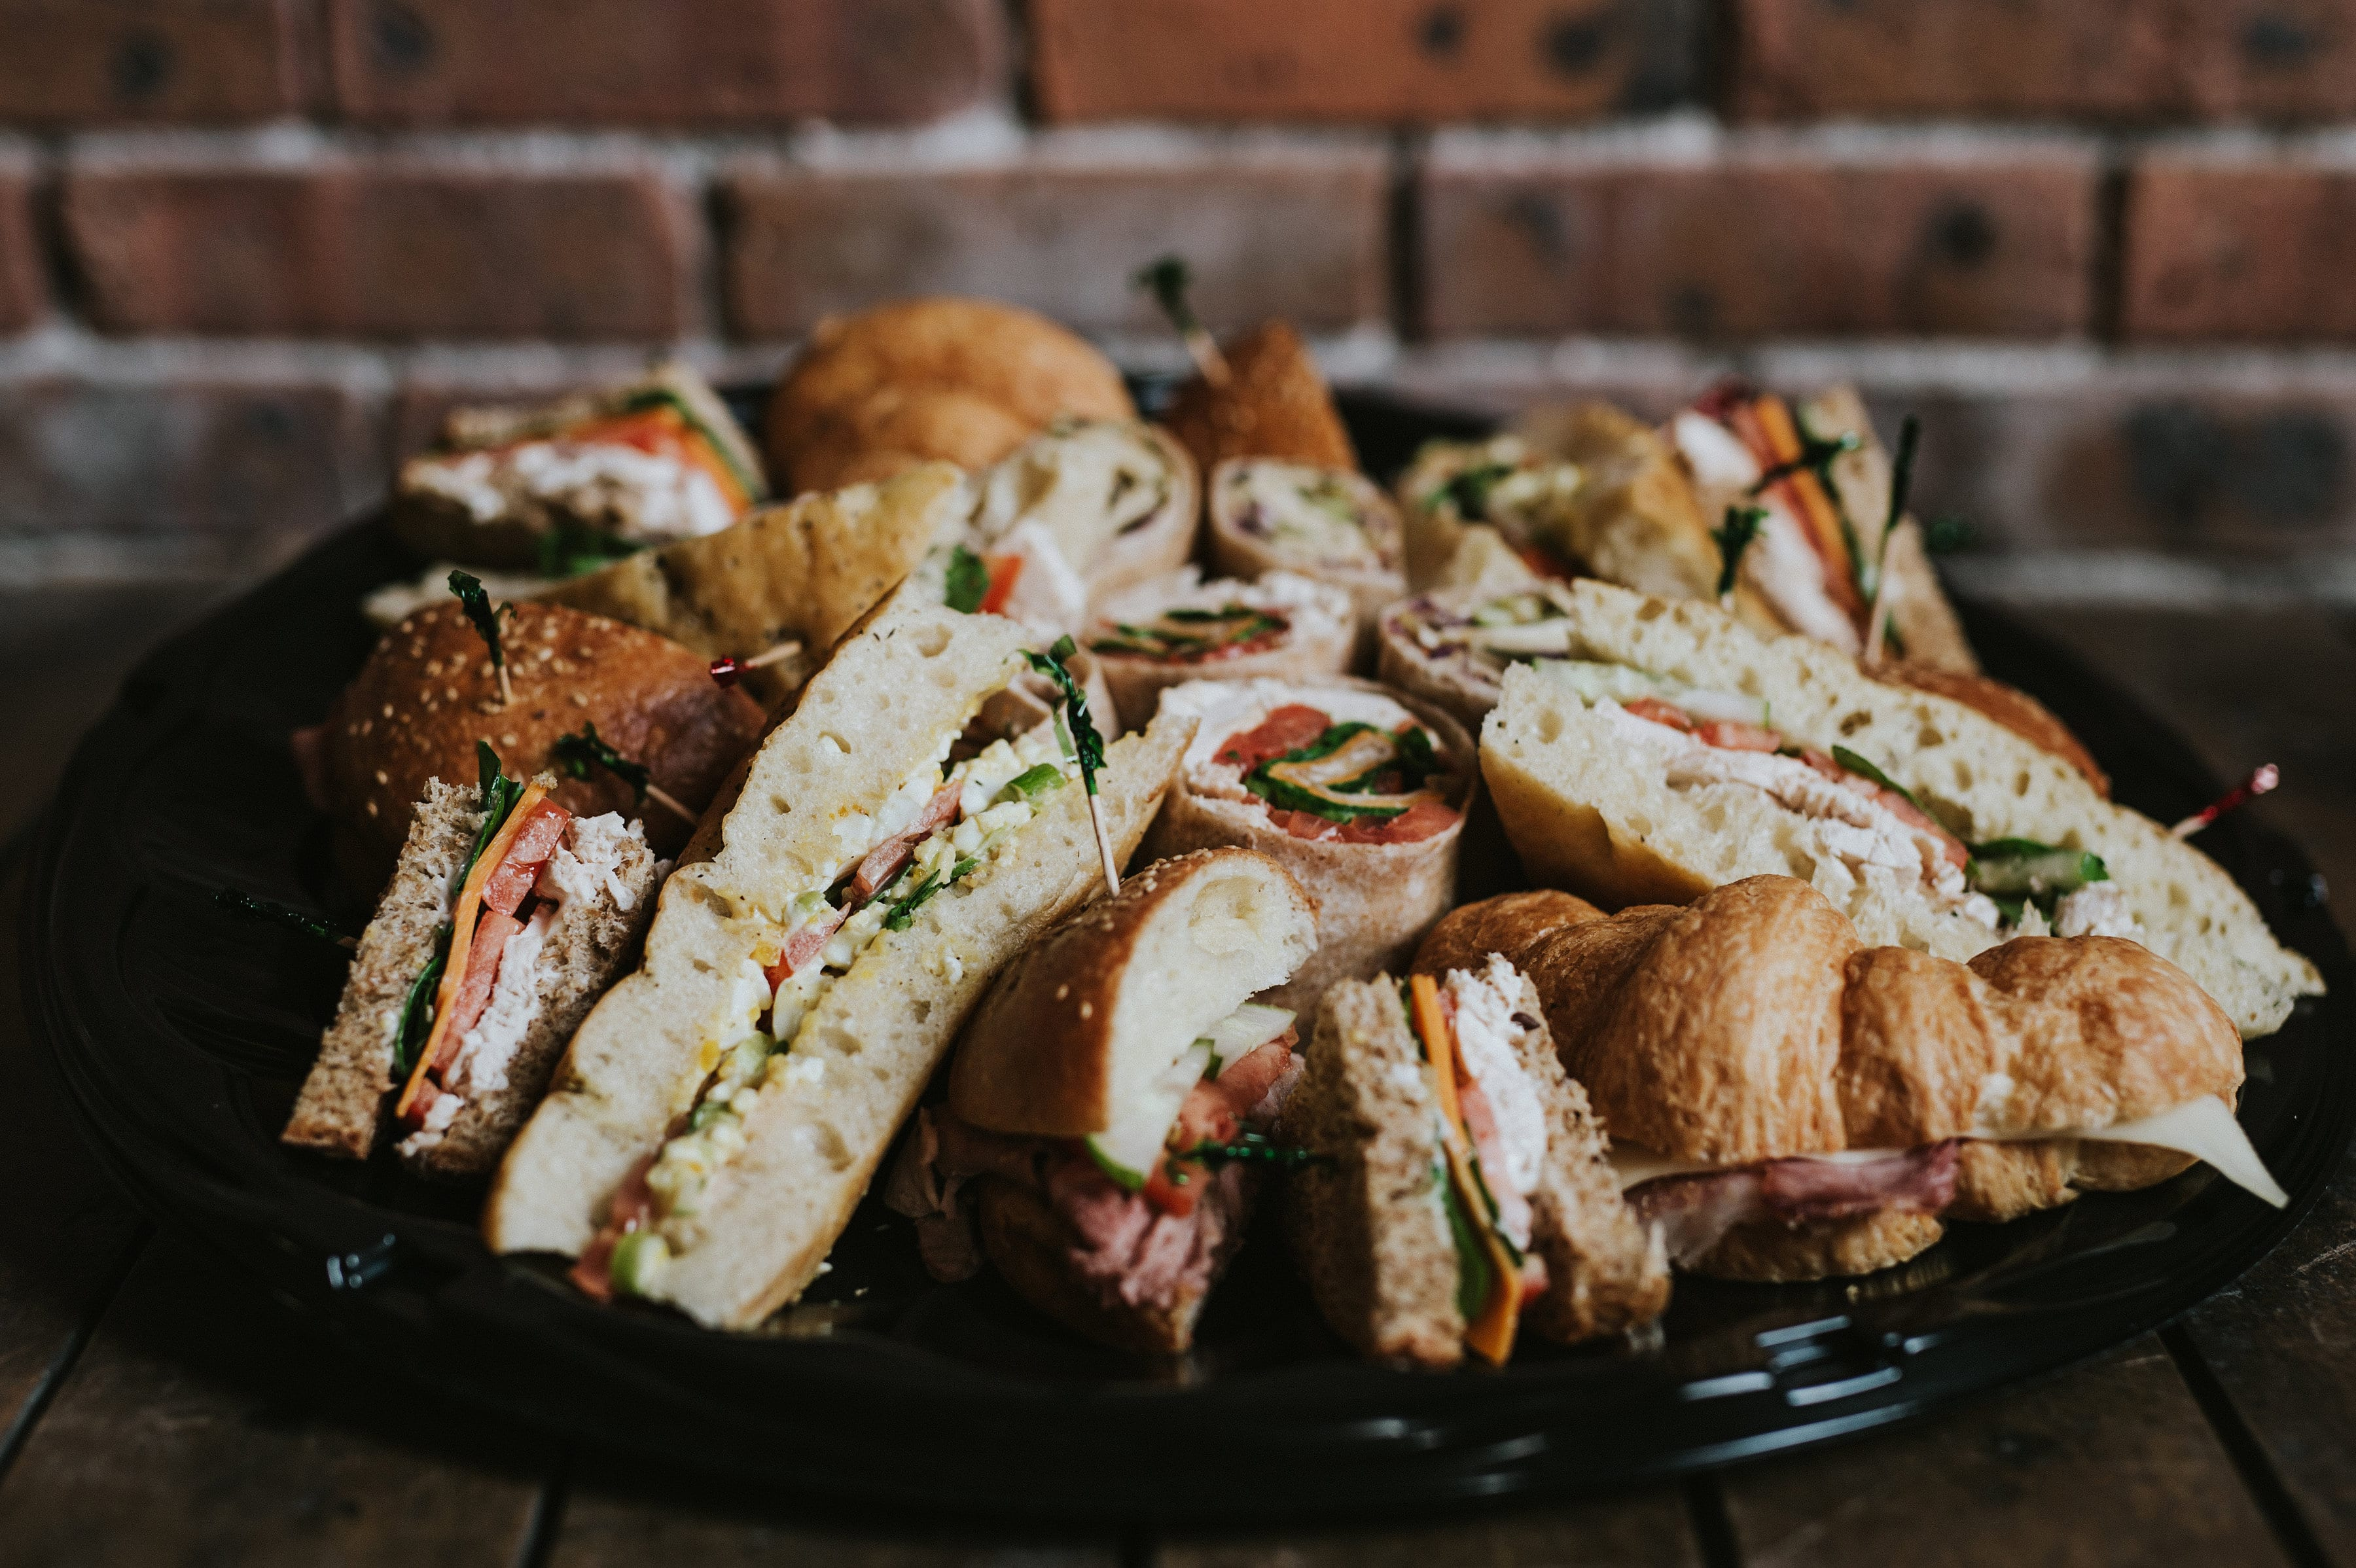 A platter of Rocket Bakery's assorted sandwich tray for catering in St. John's, Newfoundland